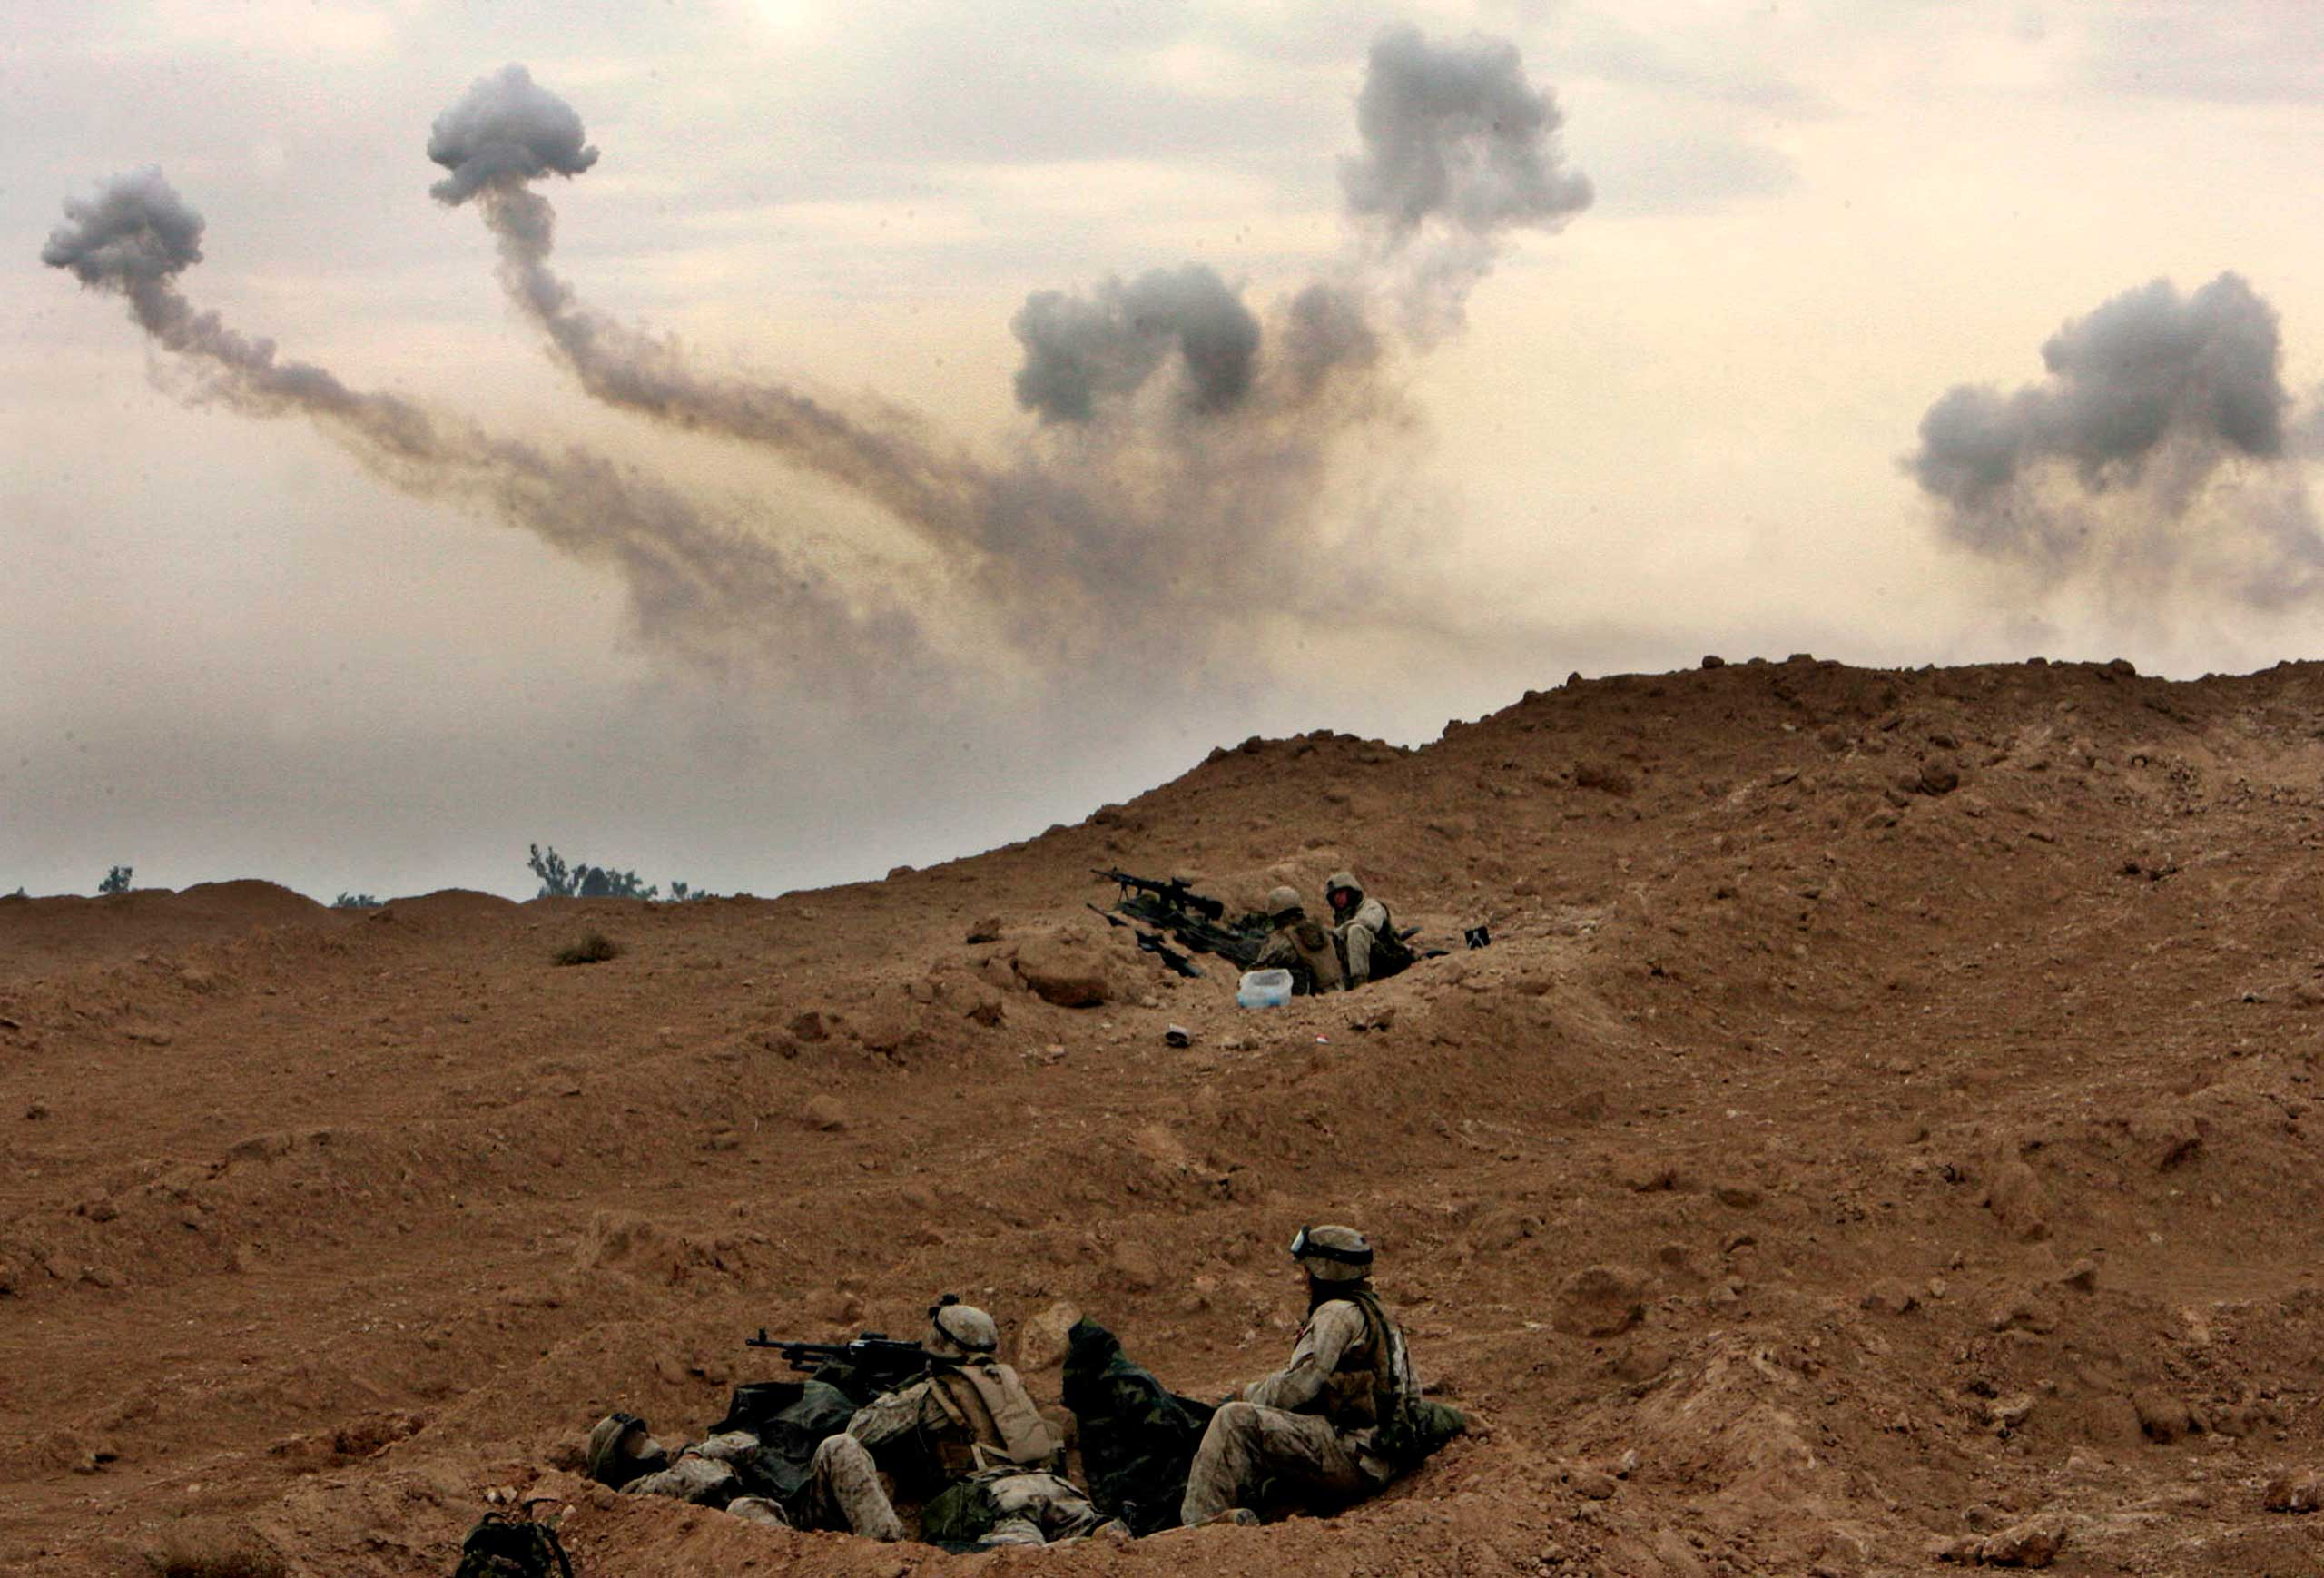 U.S. Marines of the 1st Division take position on the outskirts of Fallujah, Iraq, Nov. 8, 2004.